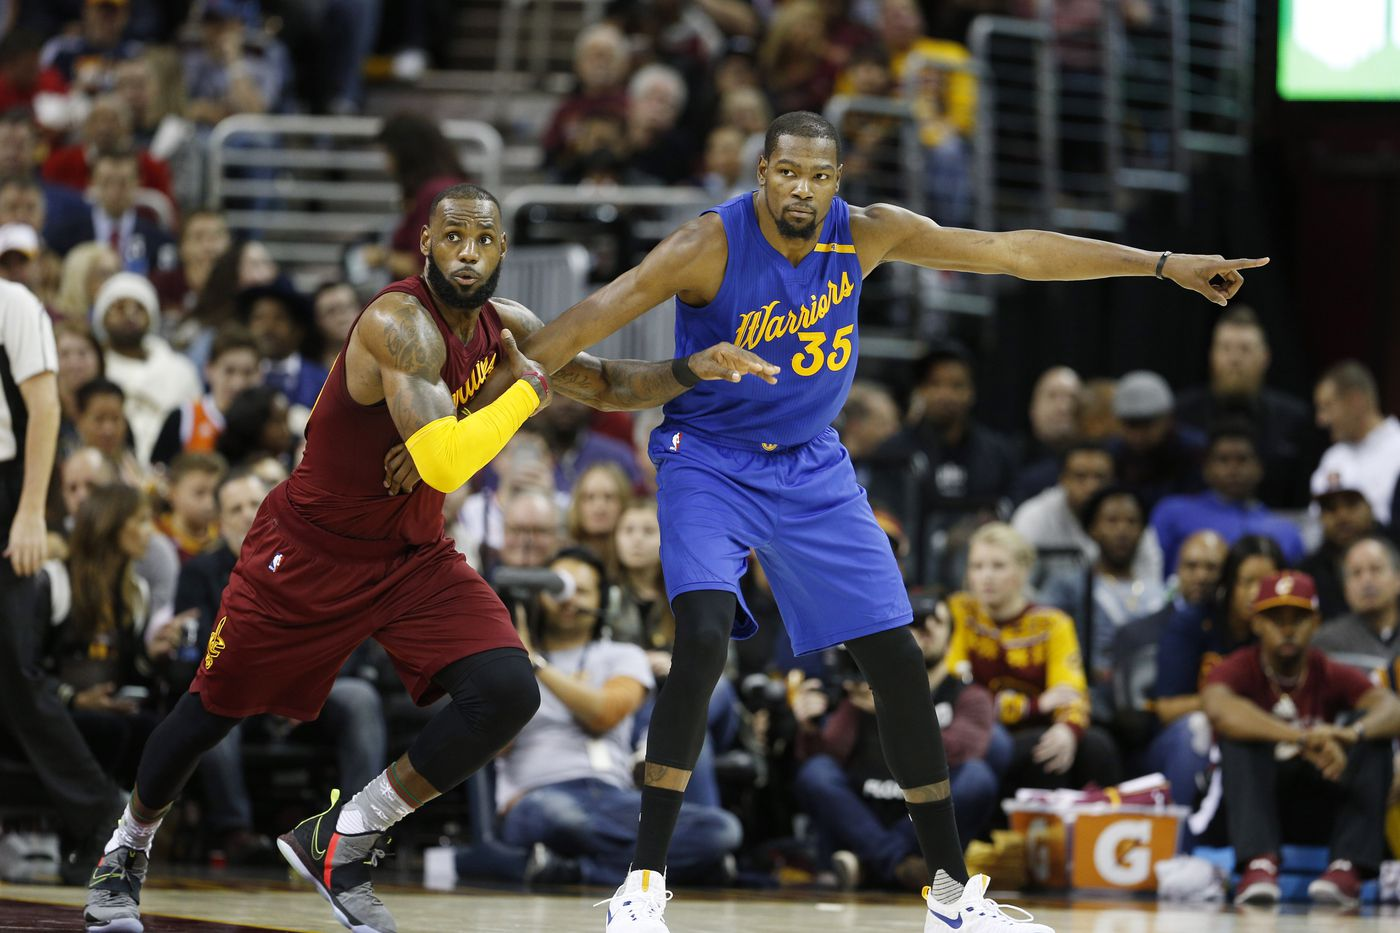 Warriors Cavaliers matchup offers perspective for Lakers Silver